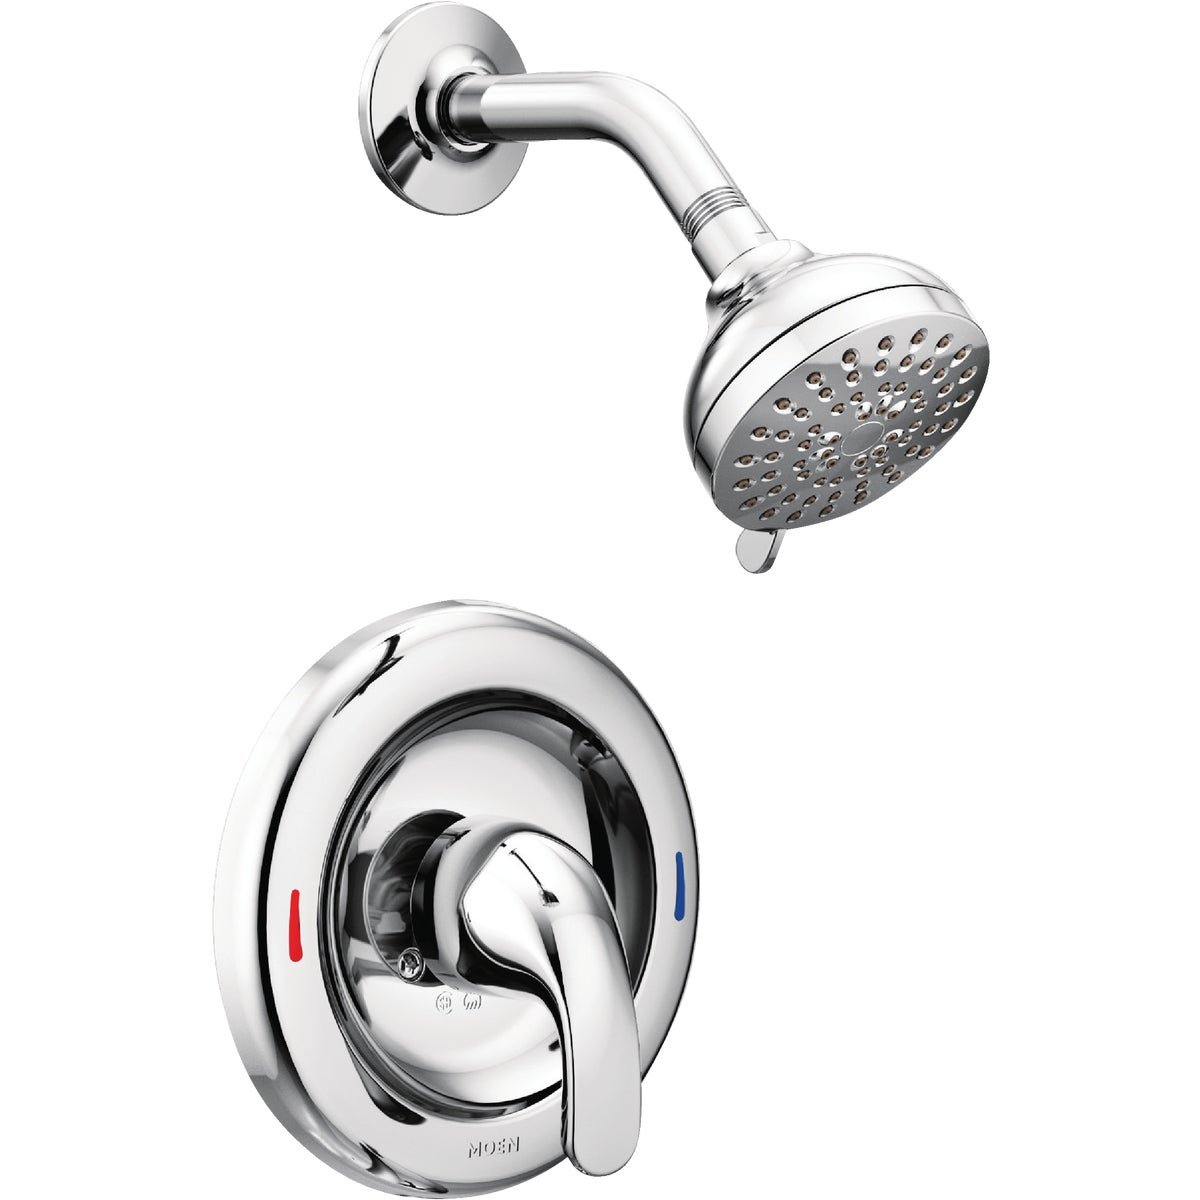 CHROME SHOWER FAUCET - L82691EP by Moen Inc